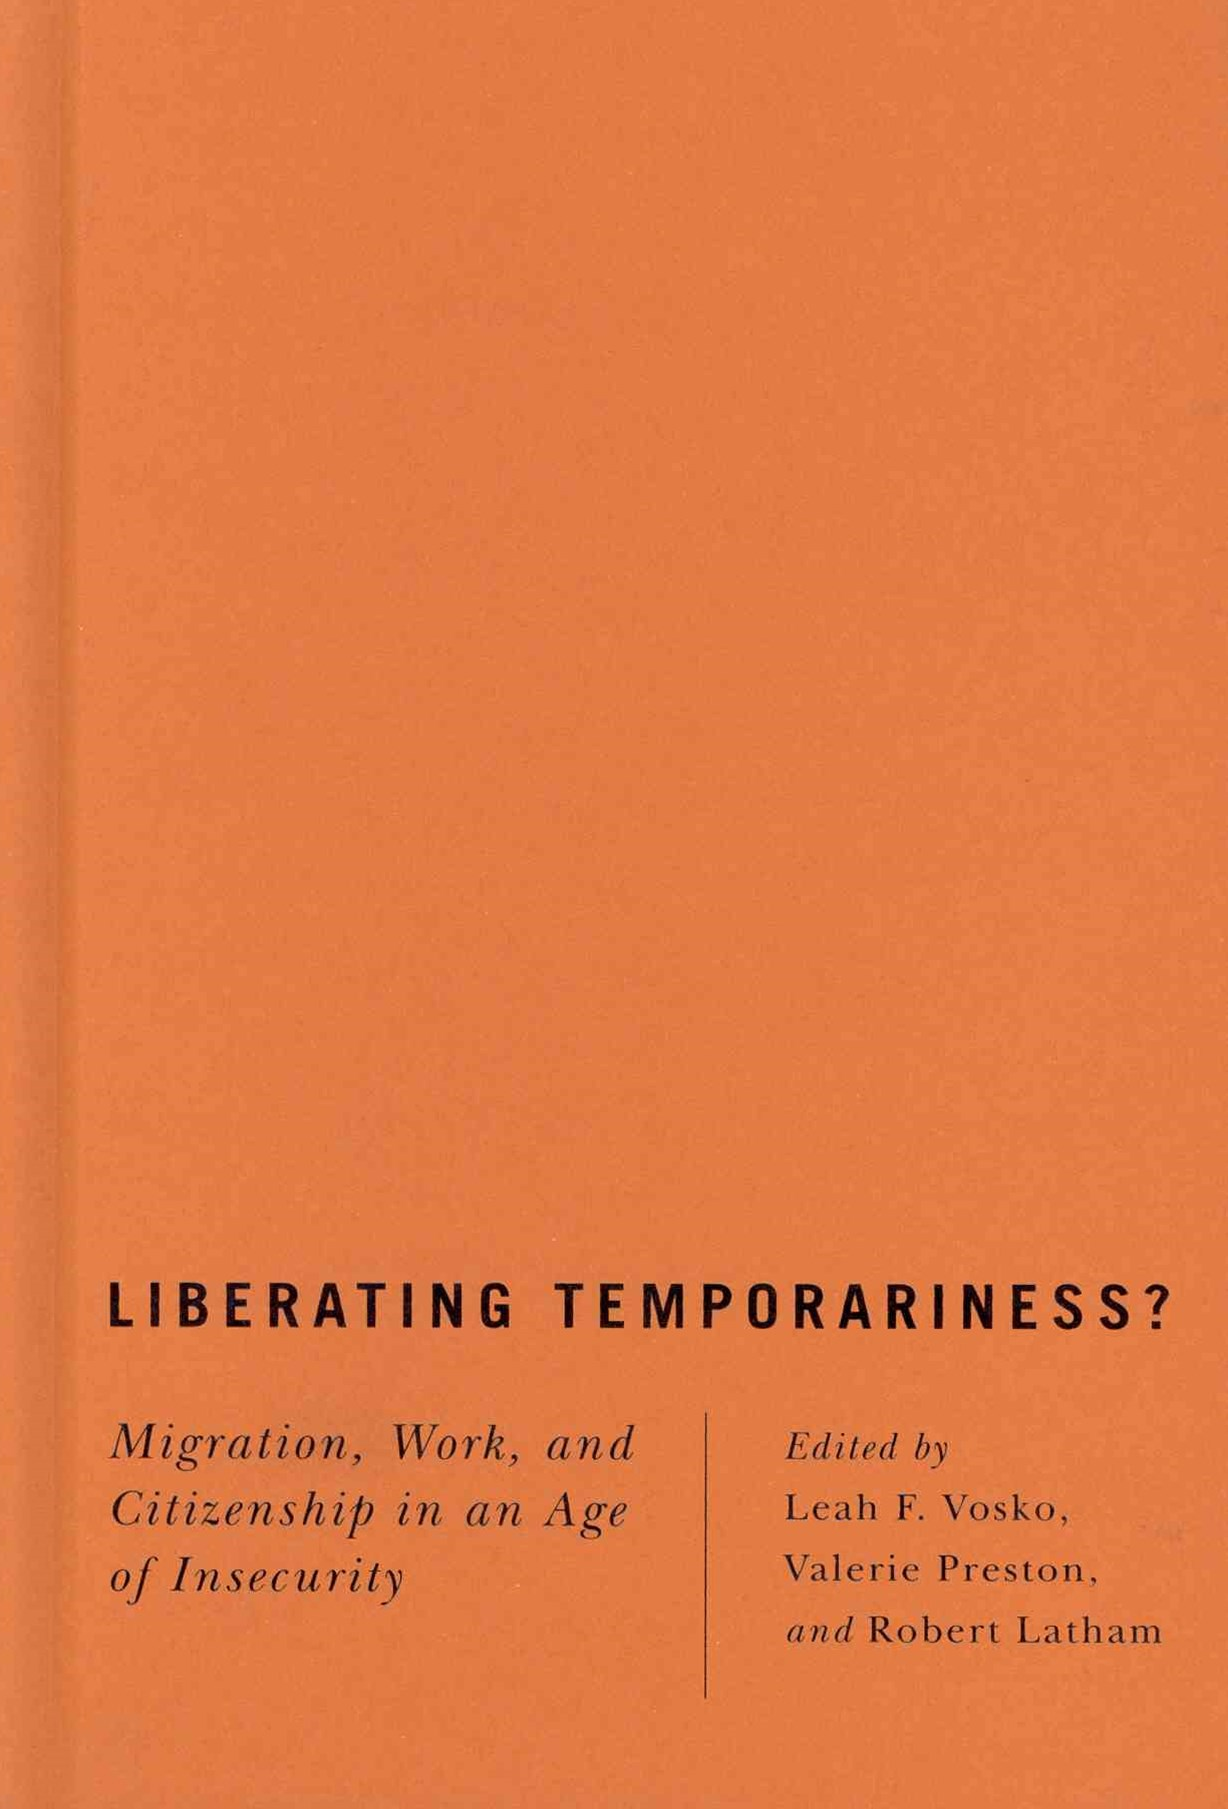 Liberating Temporariness?